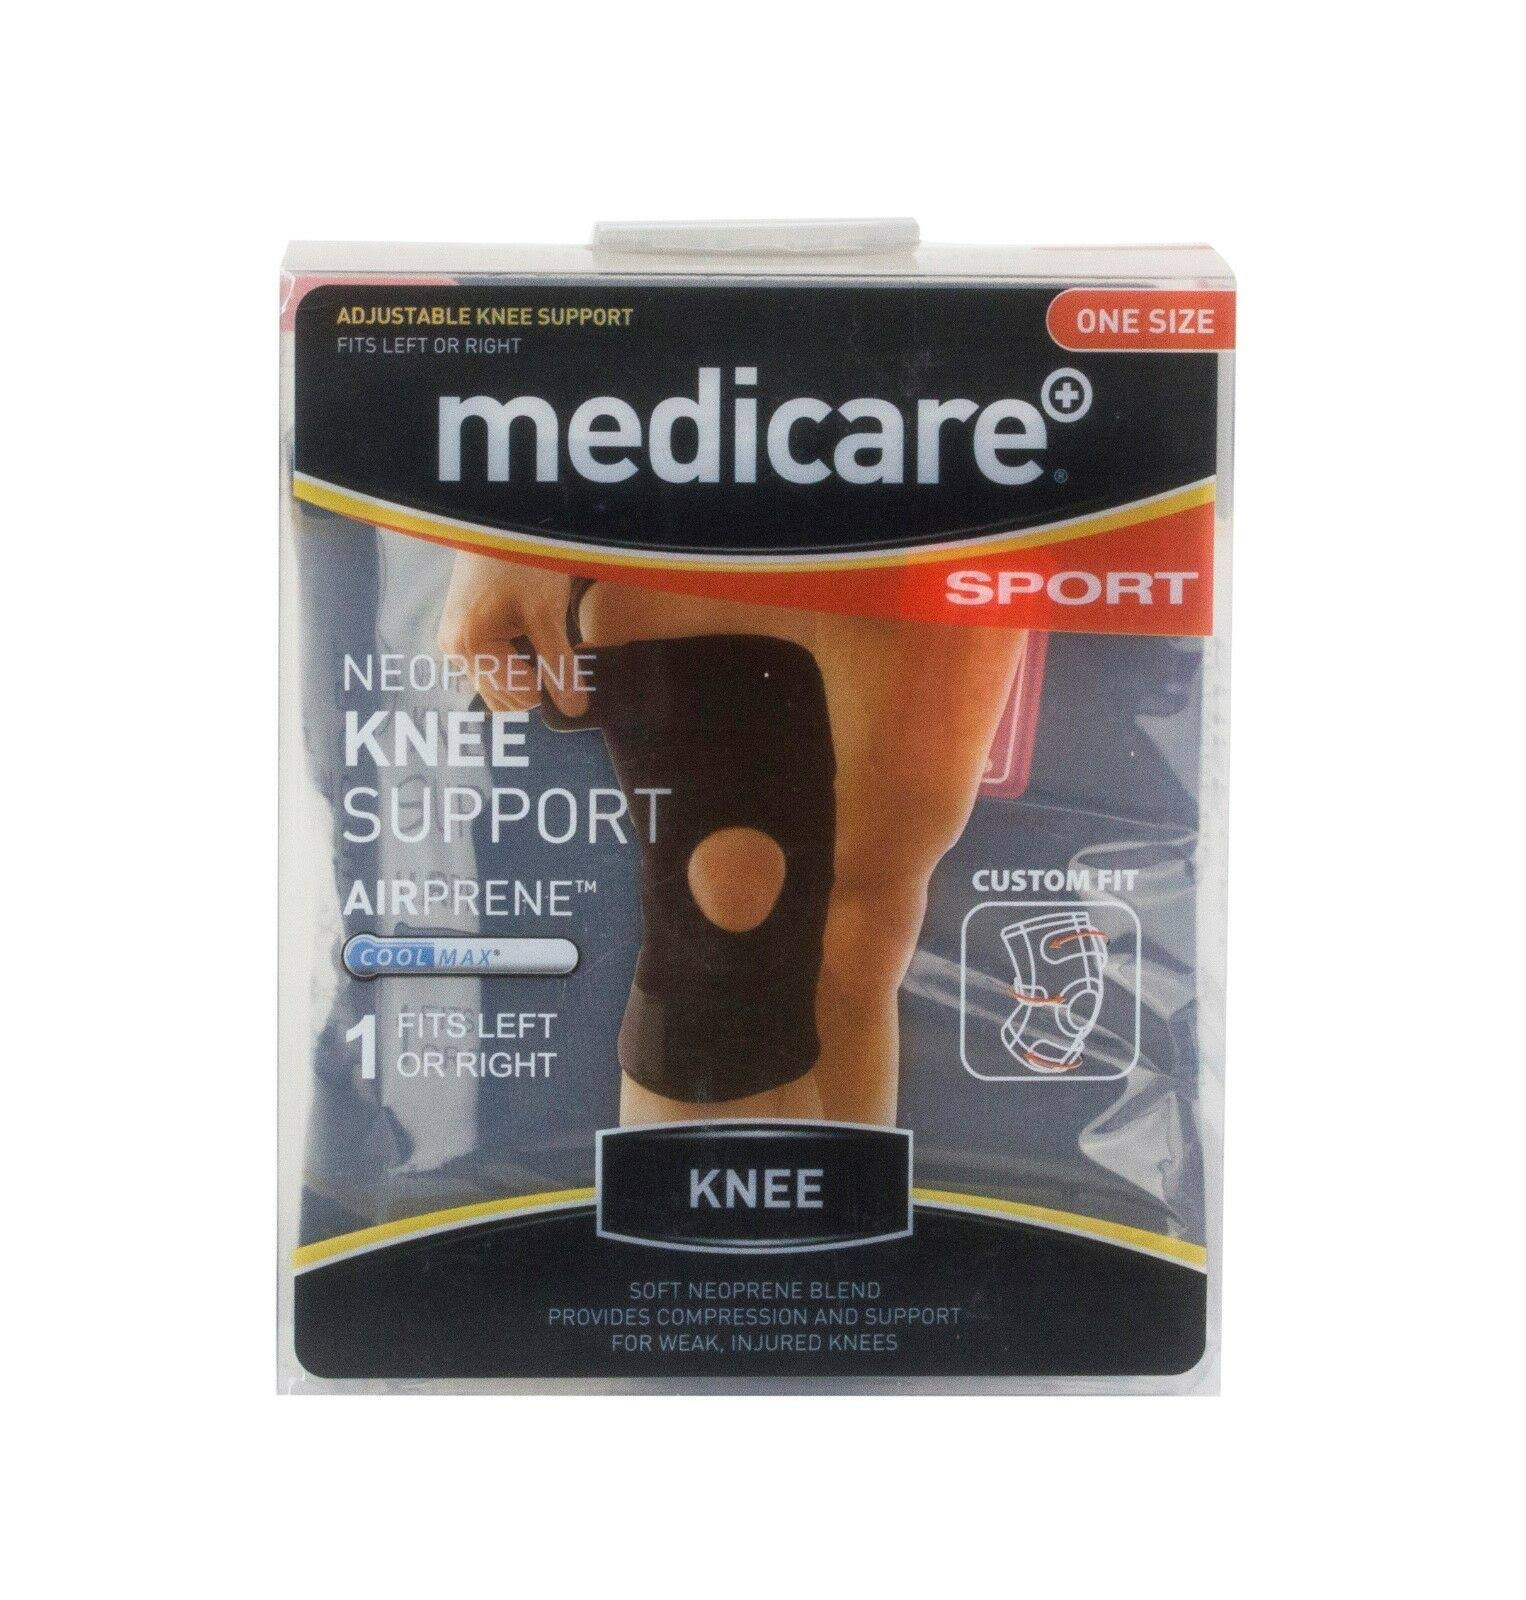 Medicare Sport Neoprene Knee Support